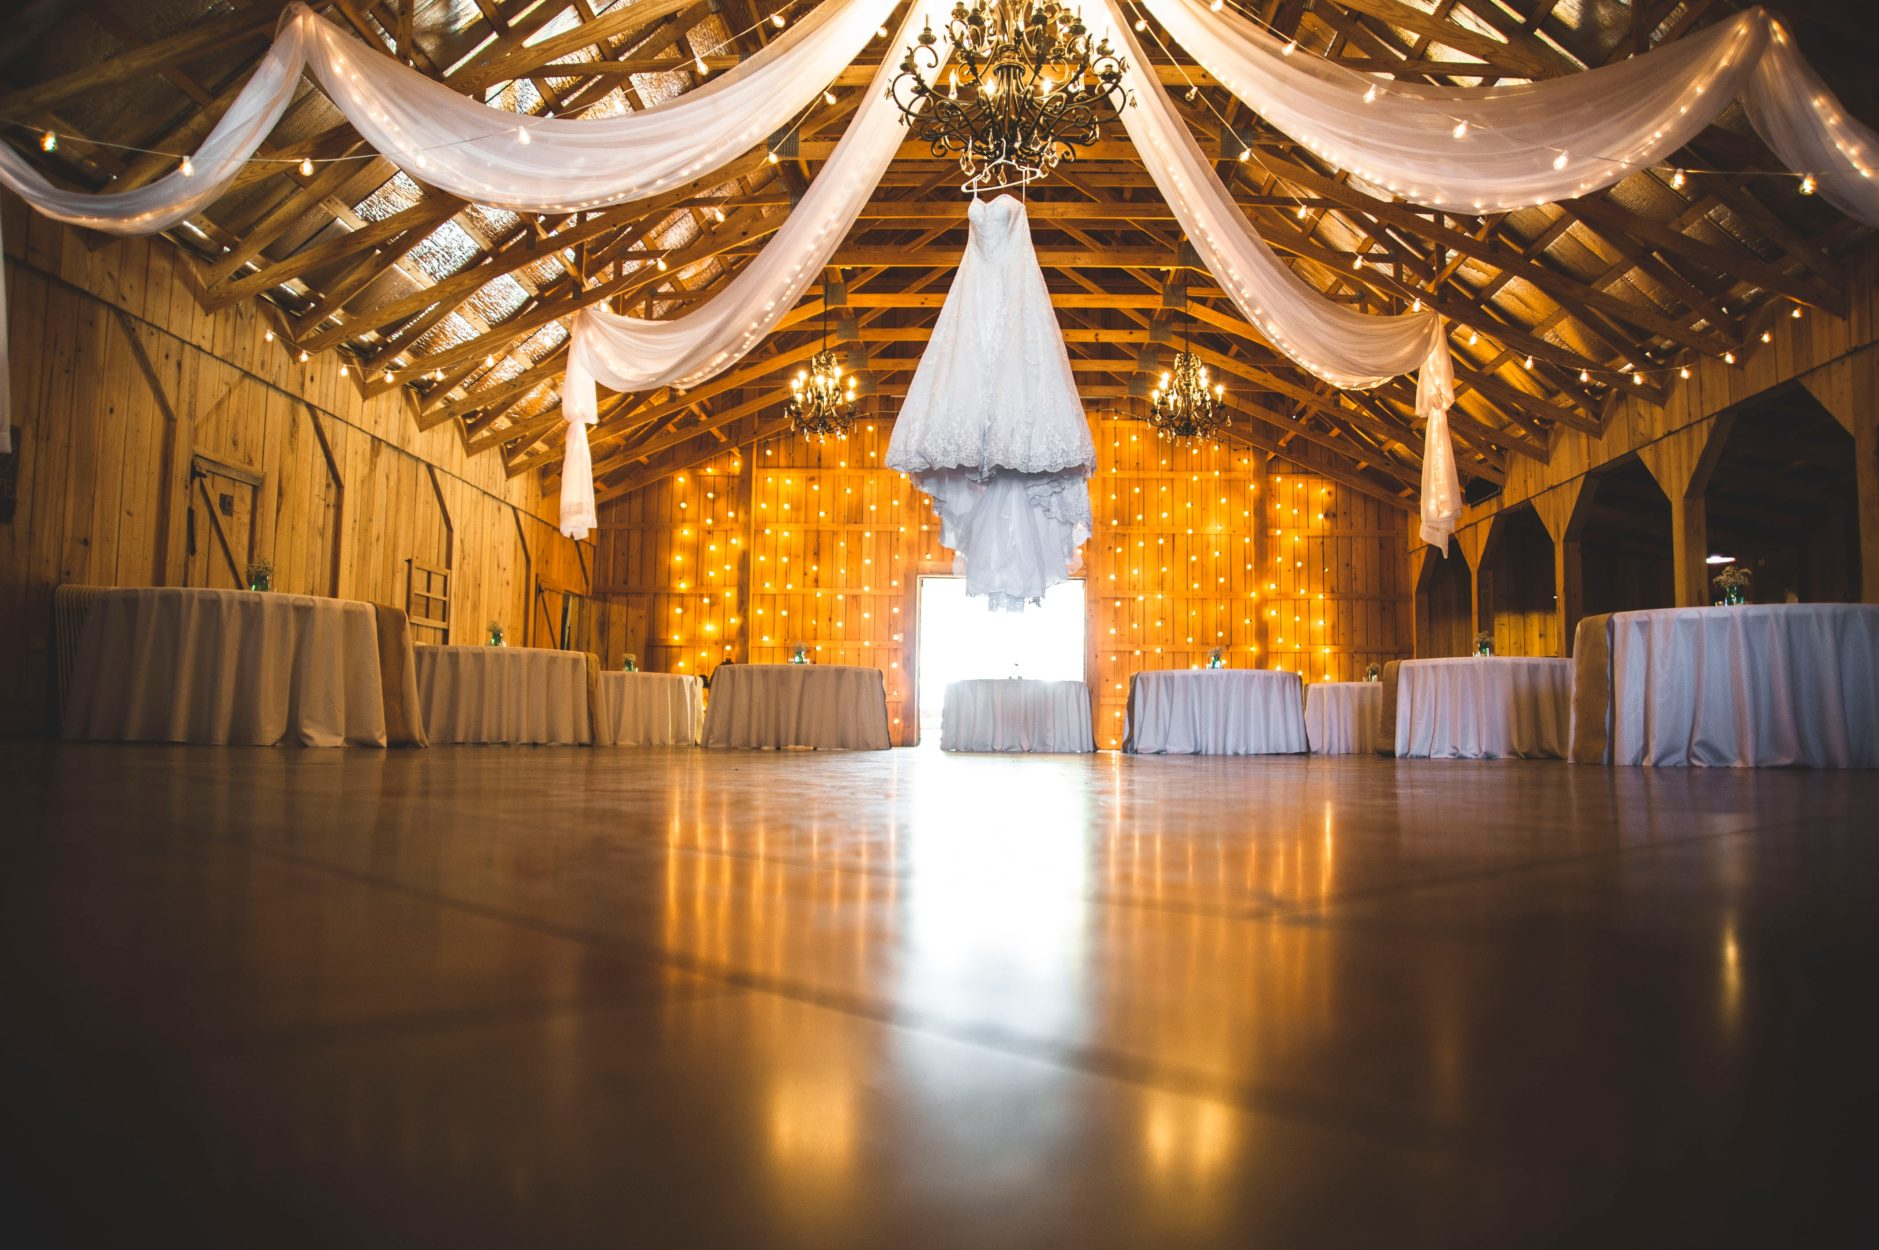 5 Unique Barn Wedding Ideas For An Amazing Experience Stacyknows